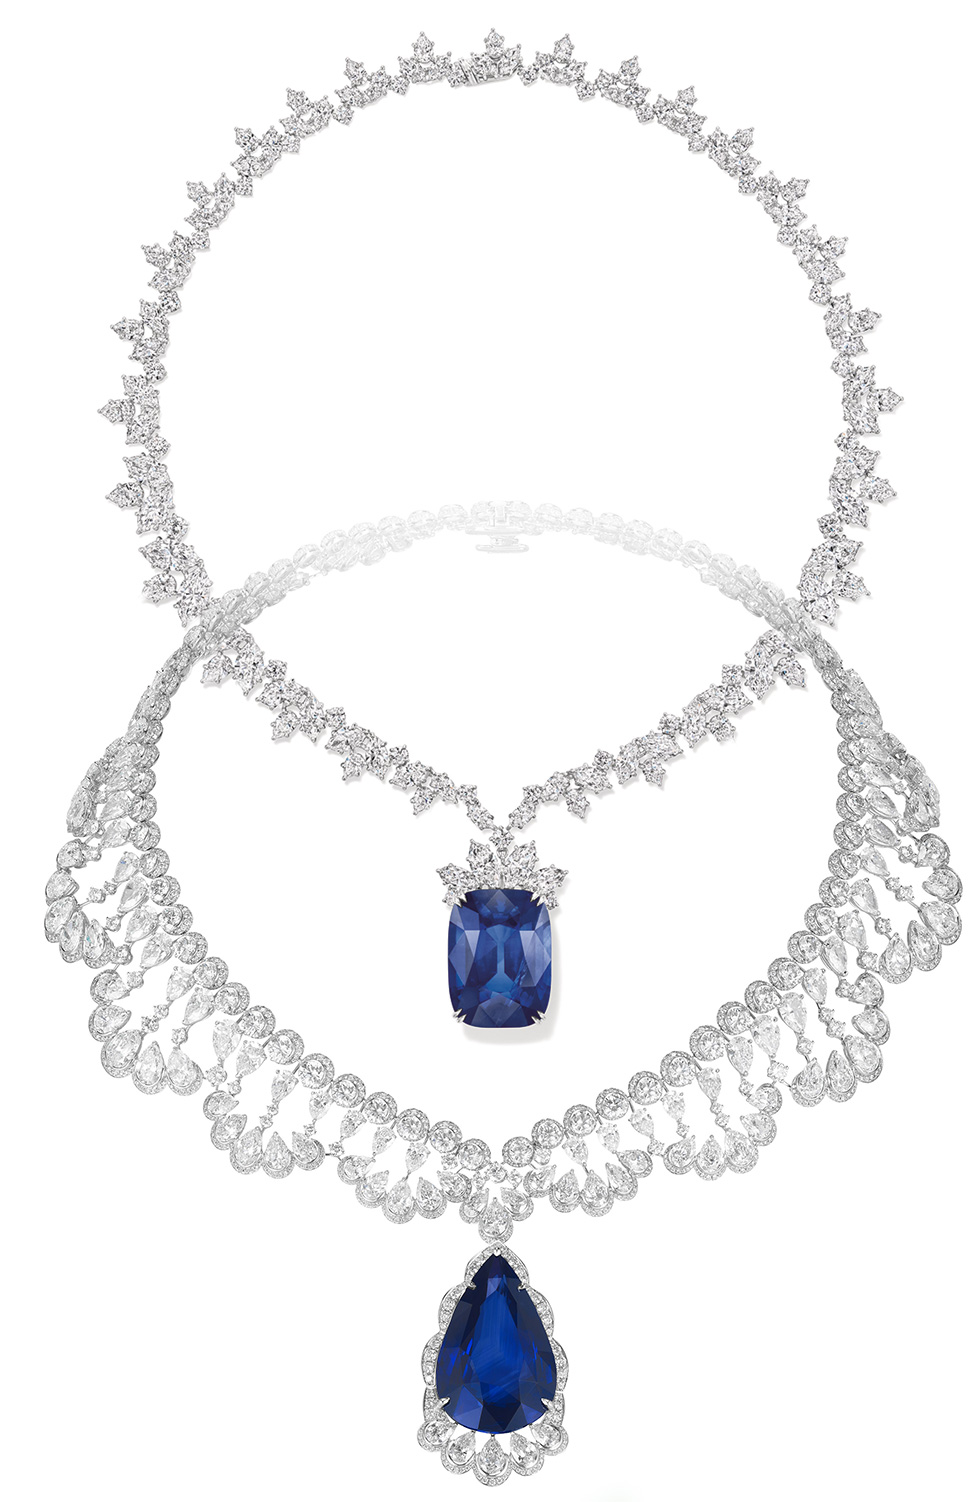 On top: Harry Winston necklace with 68.79 cts cushion-cut sapphire and diamonds. On bottom: Chopard necklace with a 60 cts pear-shaped sapphire and diamonds